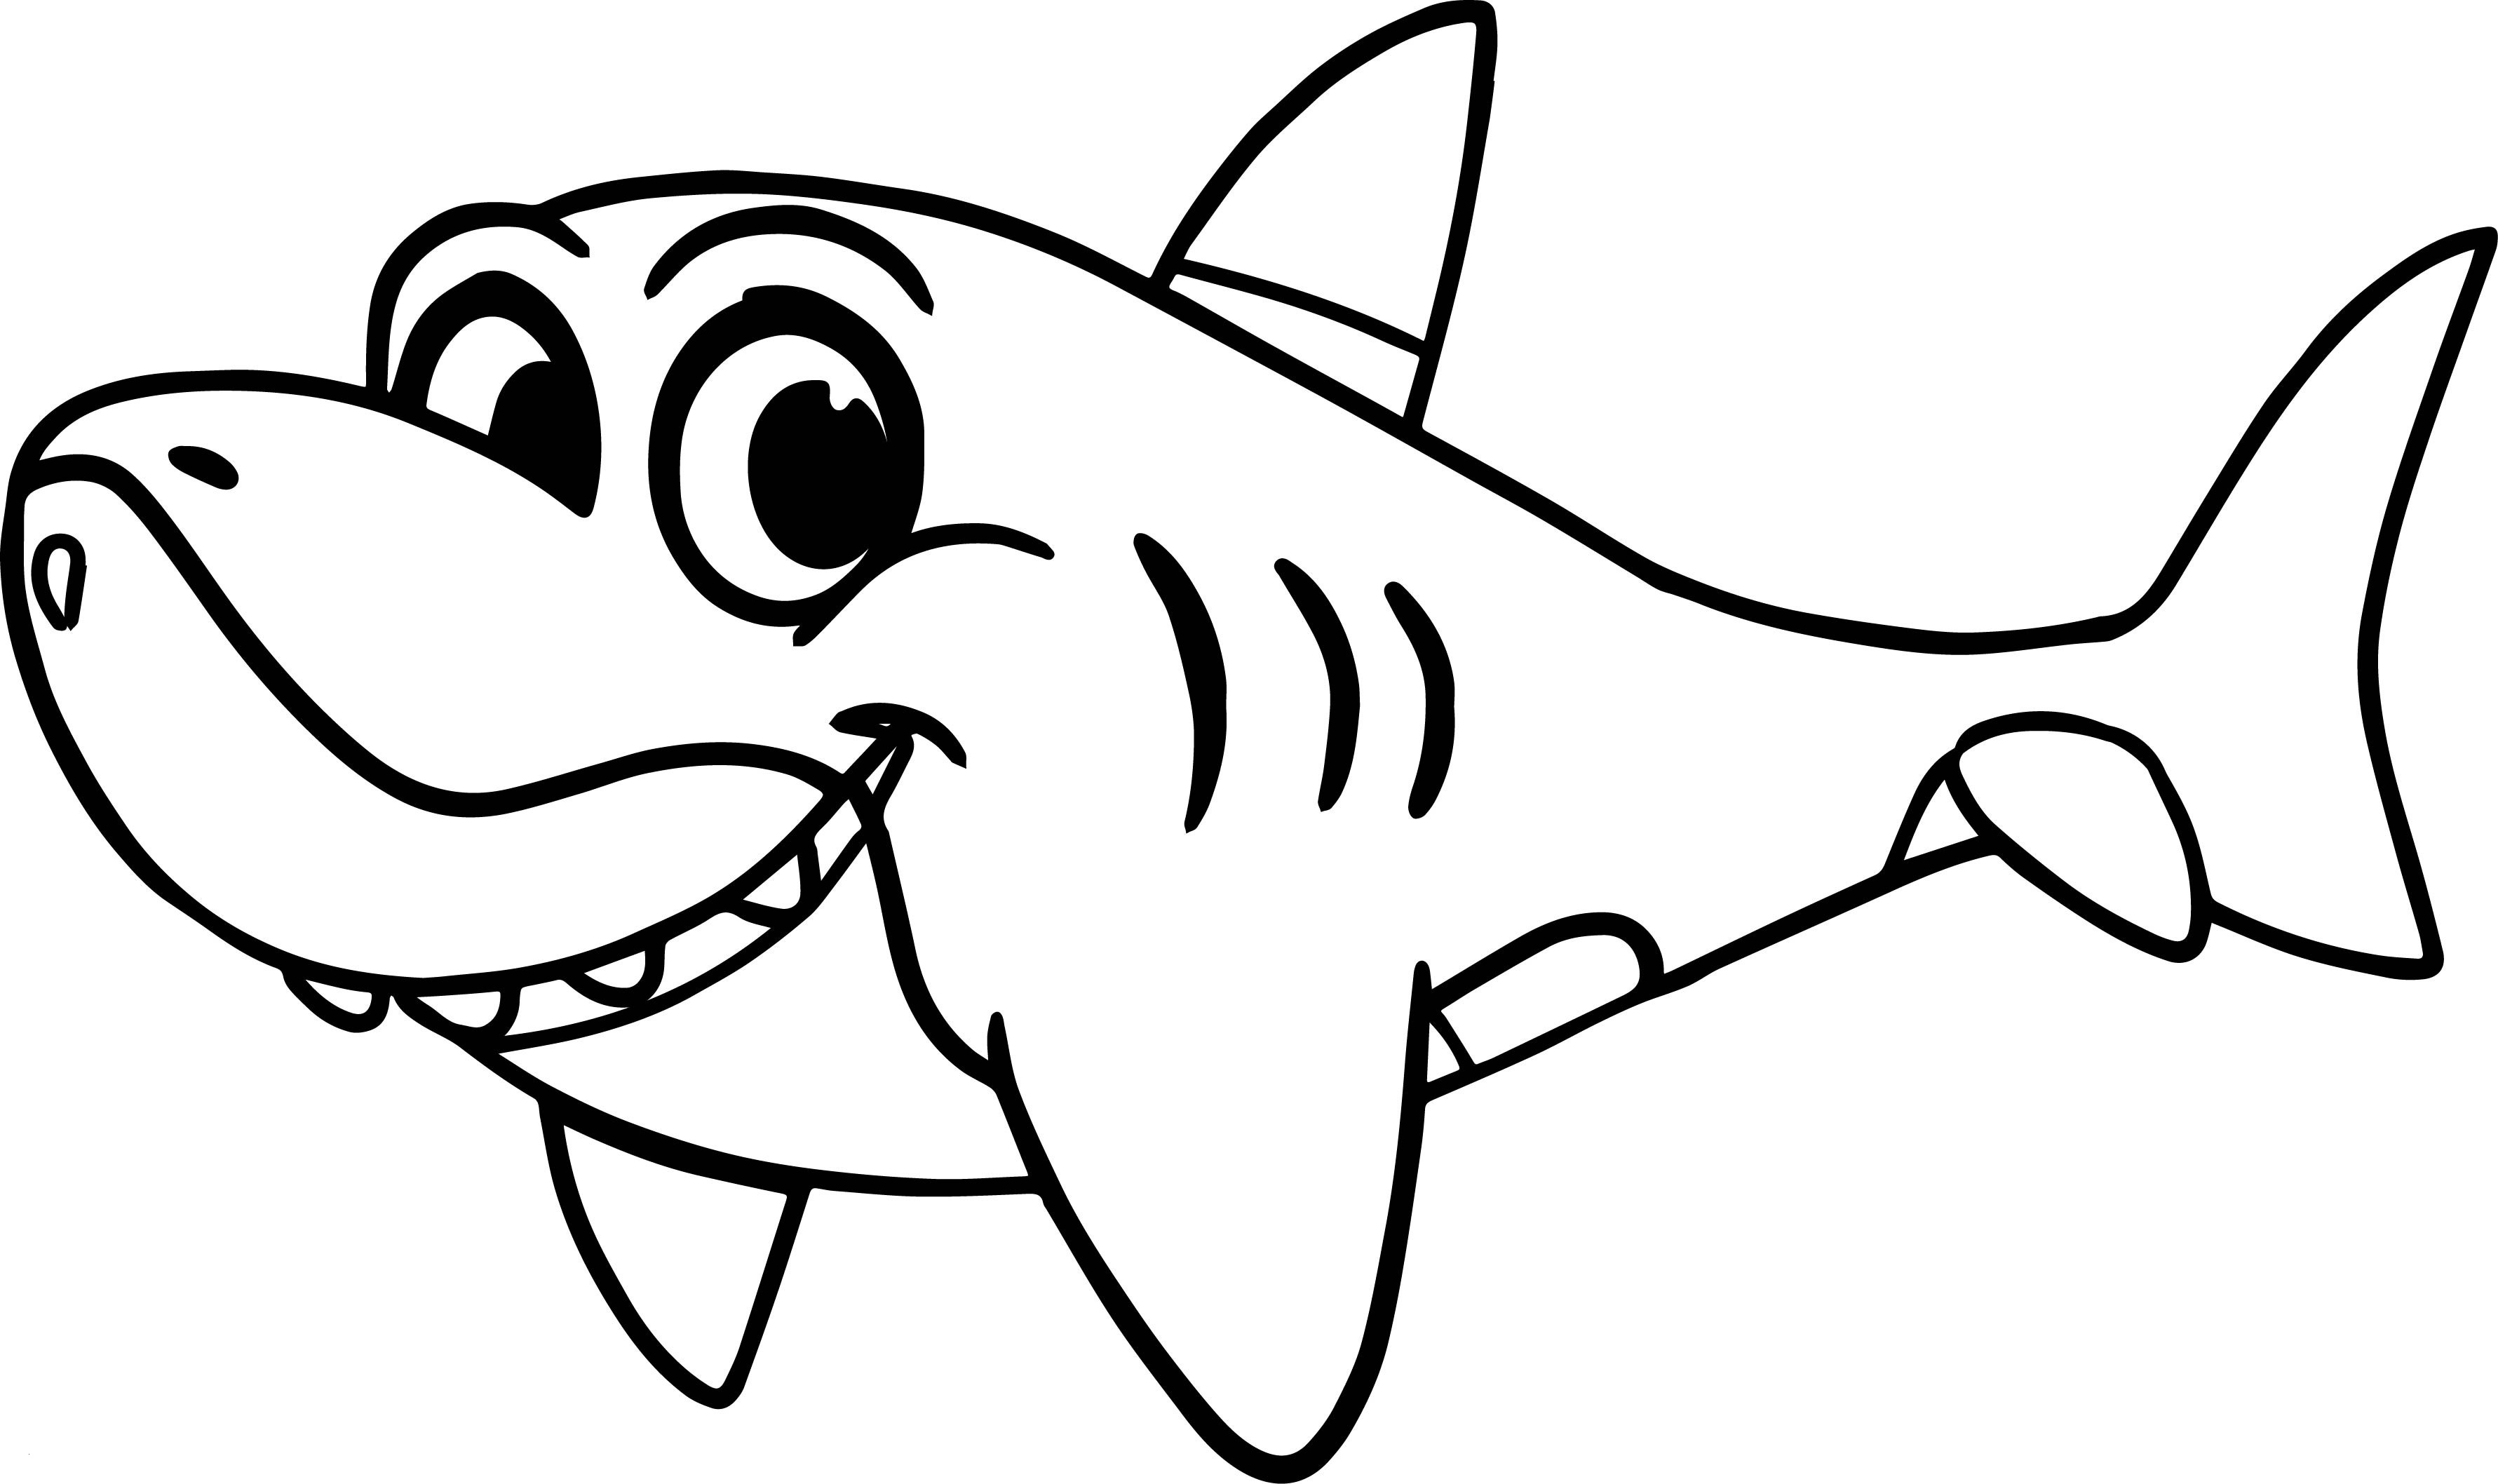 shark coloring pictures to print hammerhead shark coloring pages to print pictures coloring to shark print